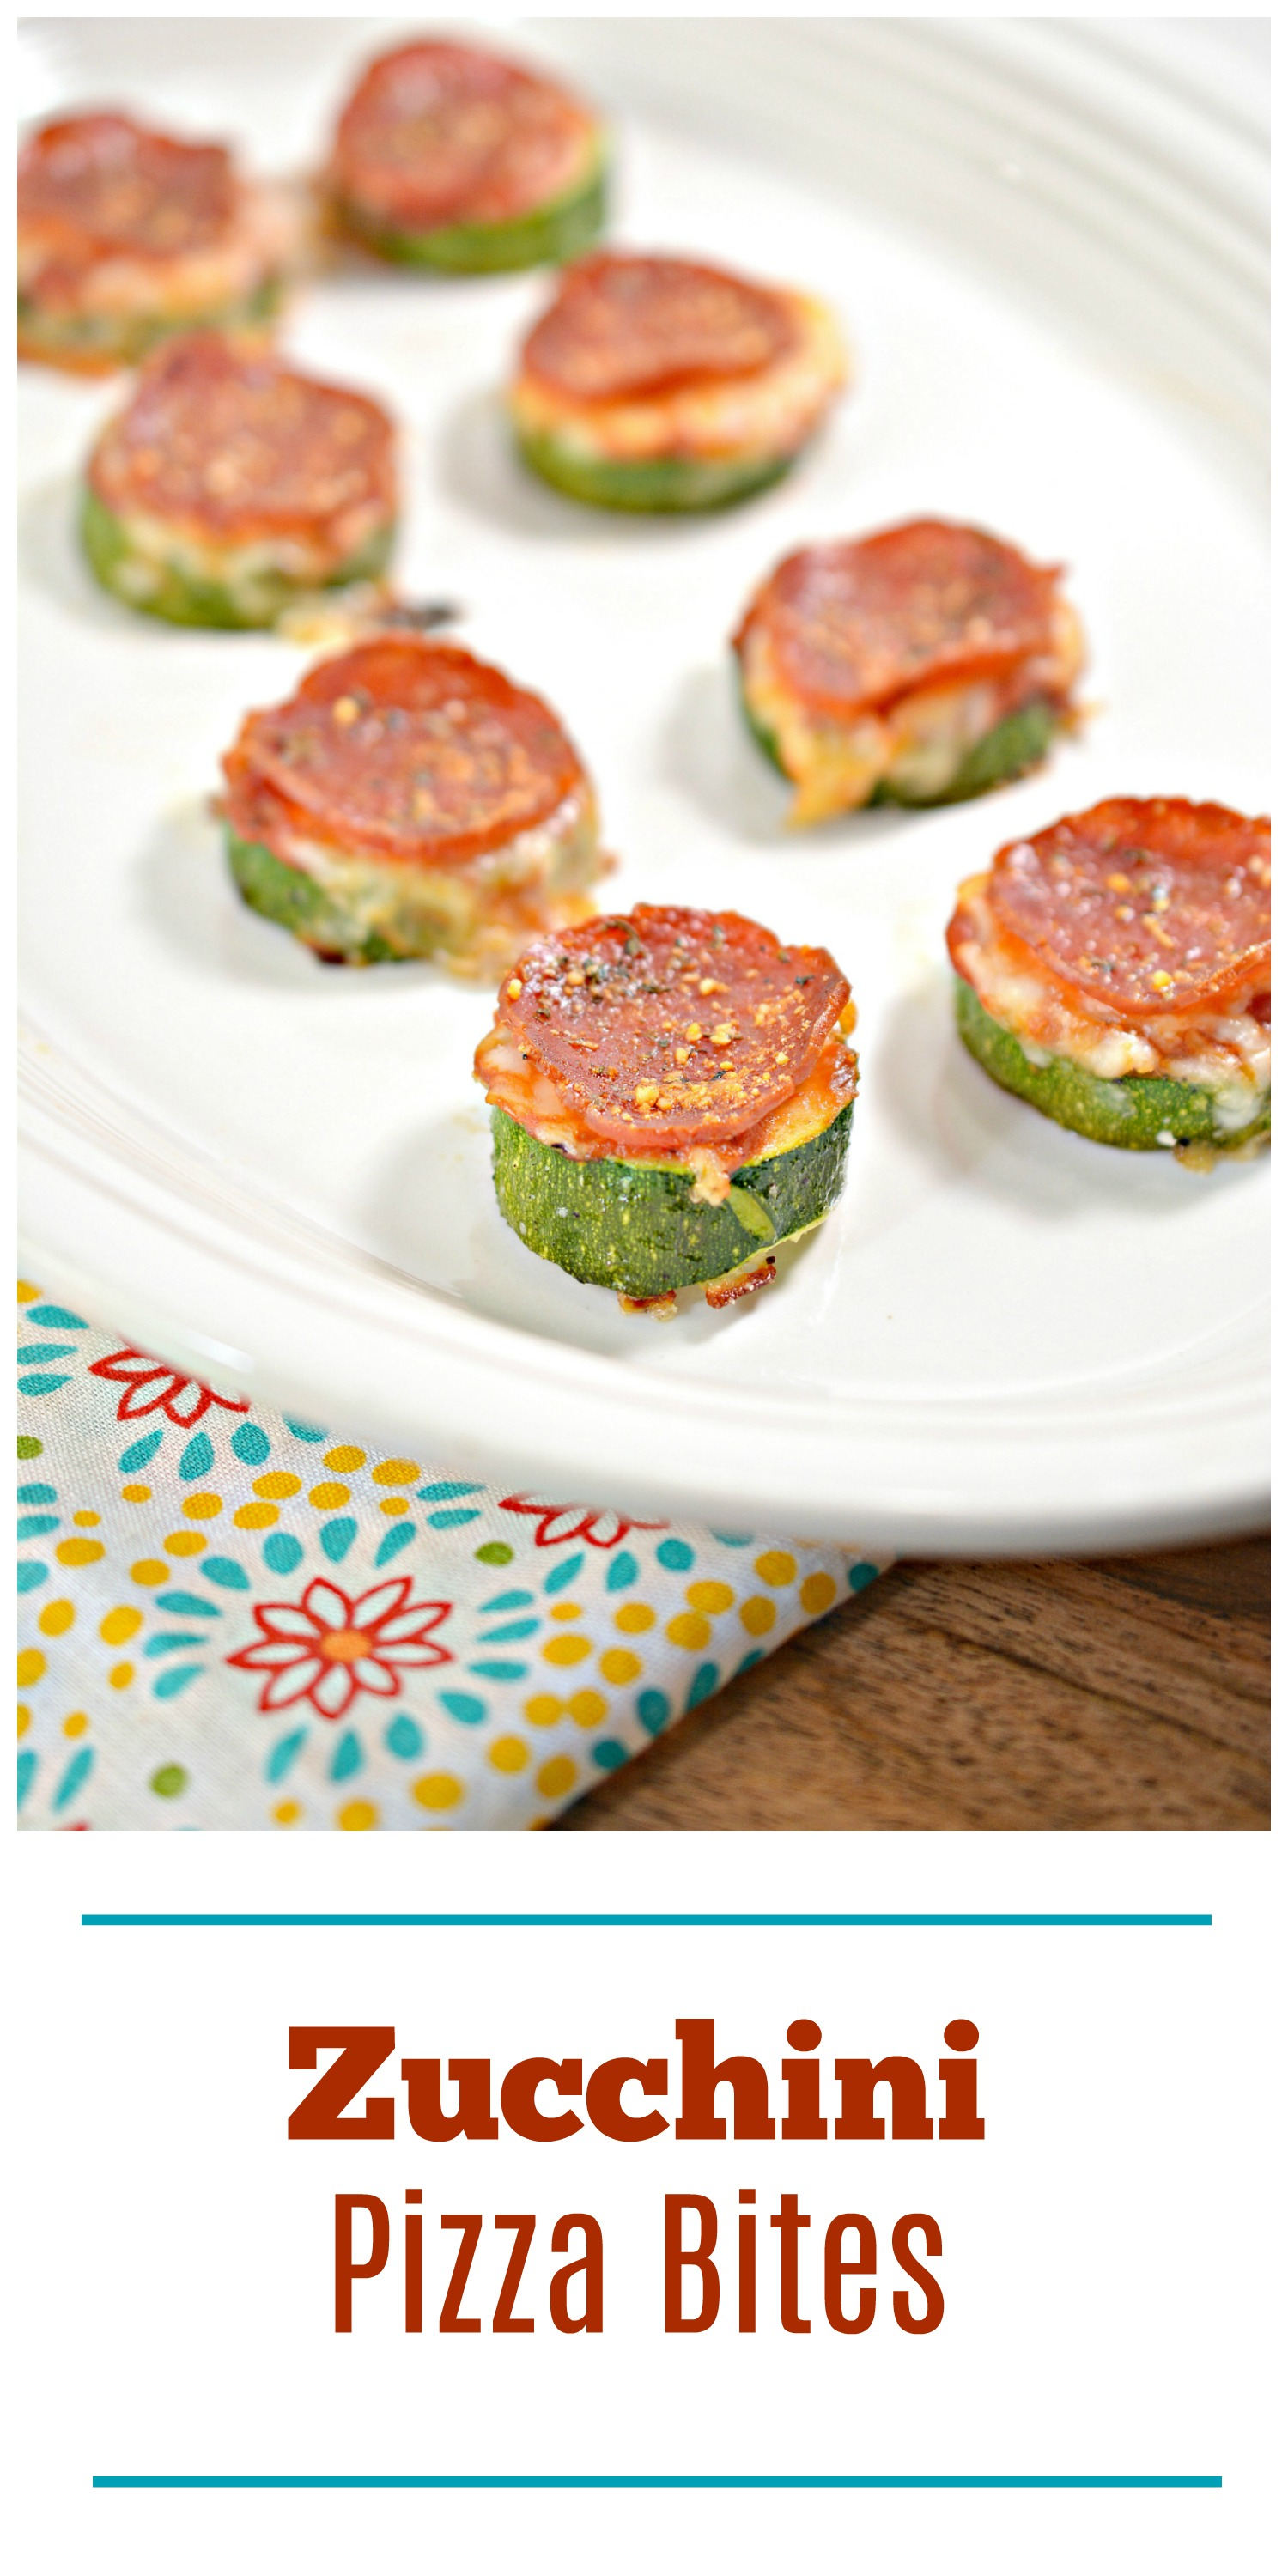 Zucchini Pizza Bites. Easy, kid friendly and light!